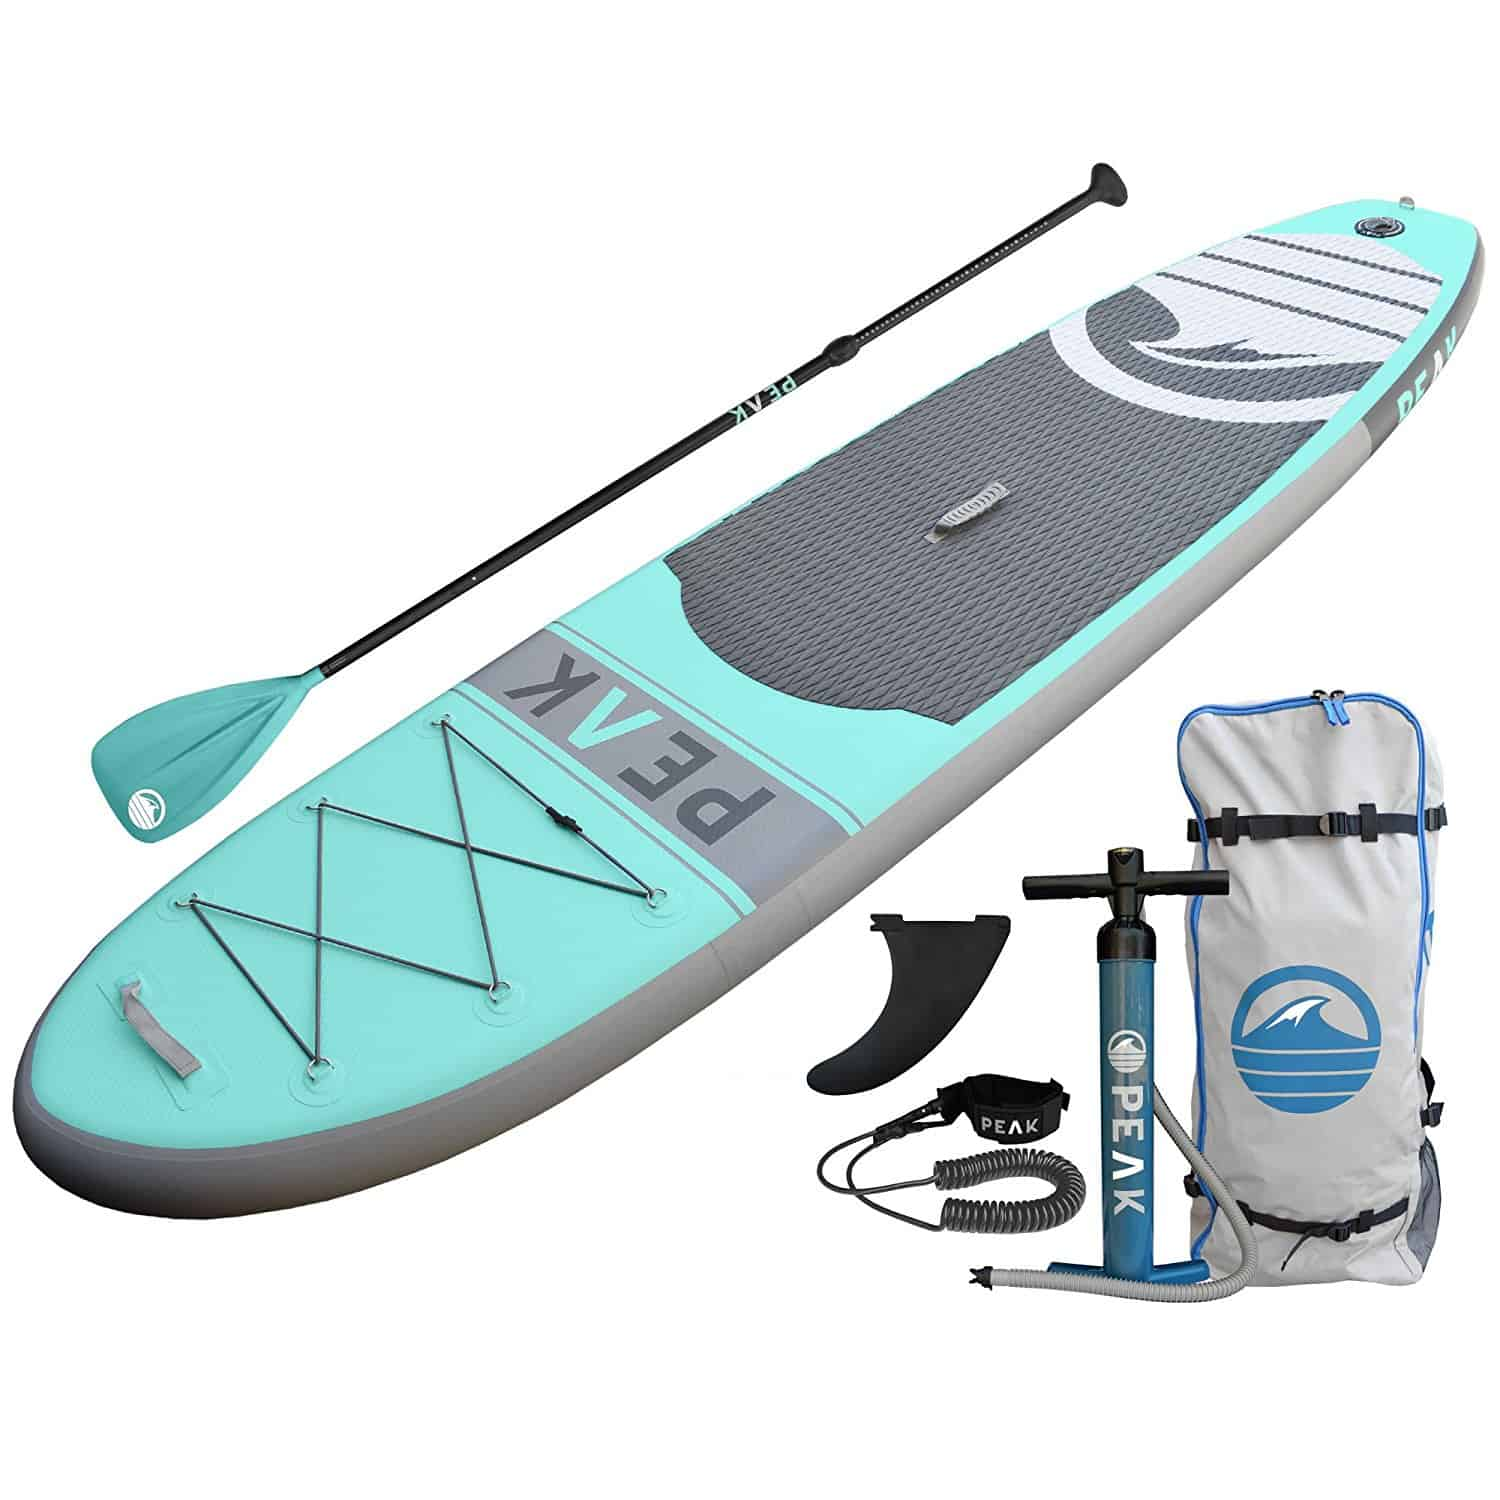 a picture of a peak inflatable stand up paddle board